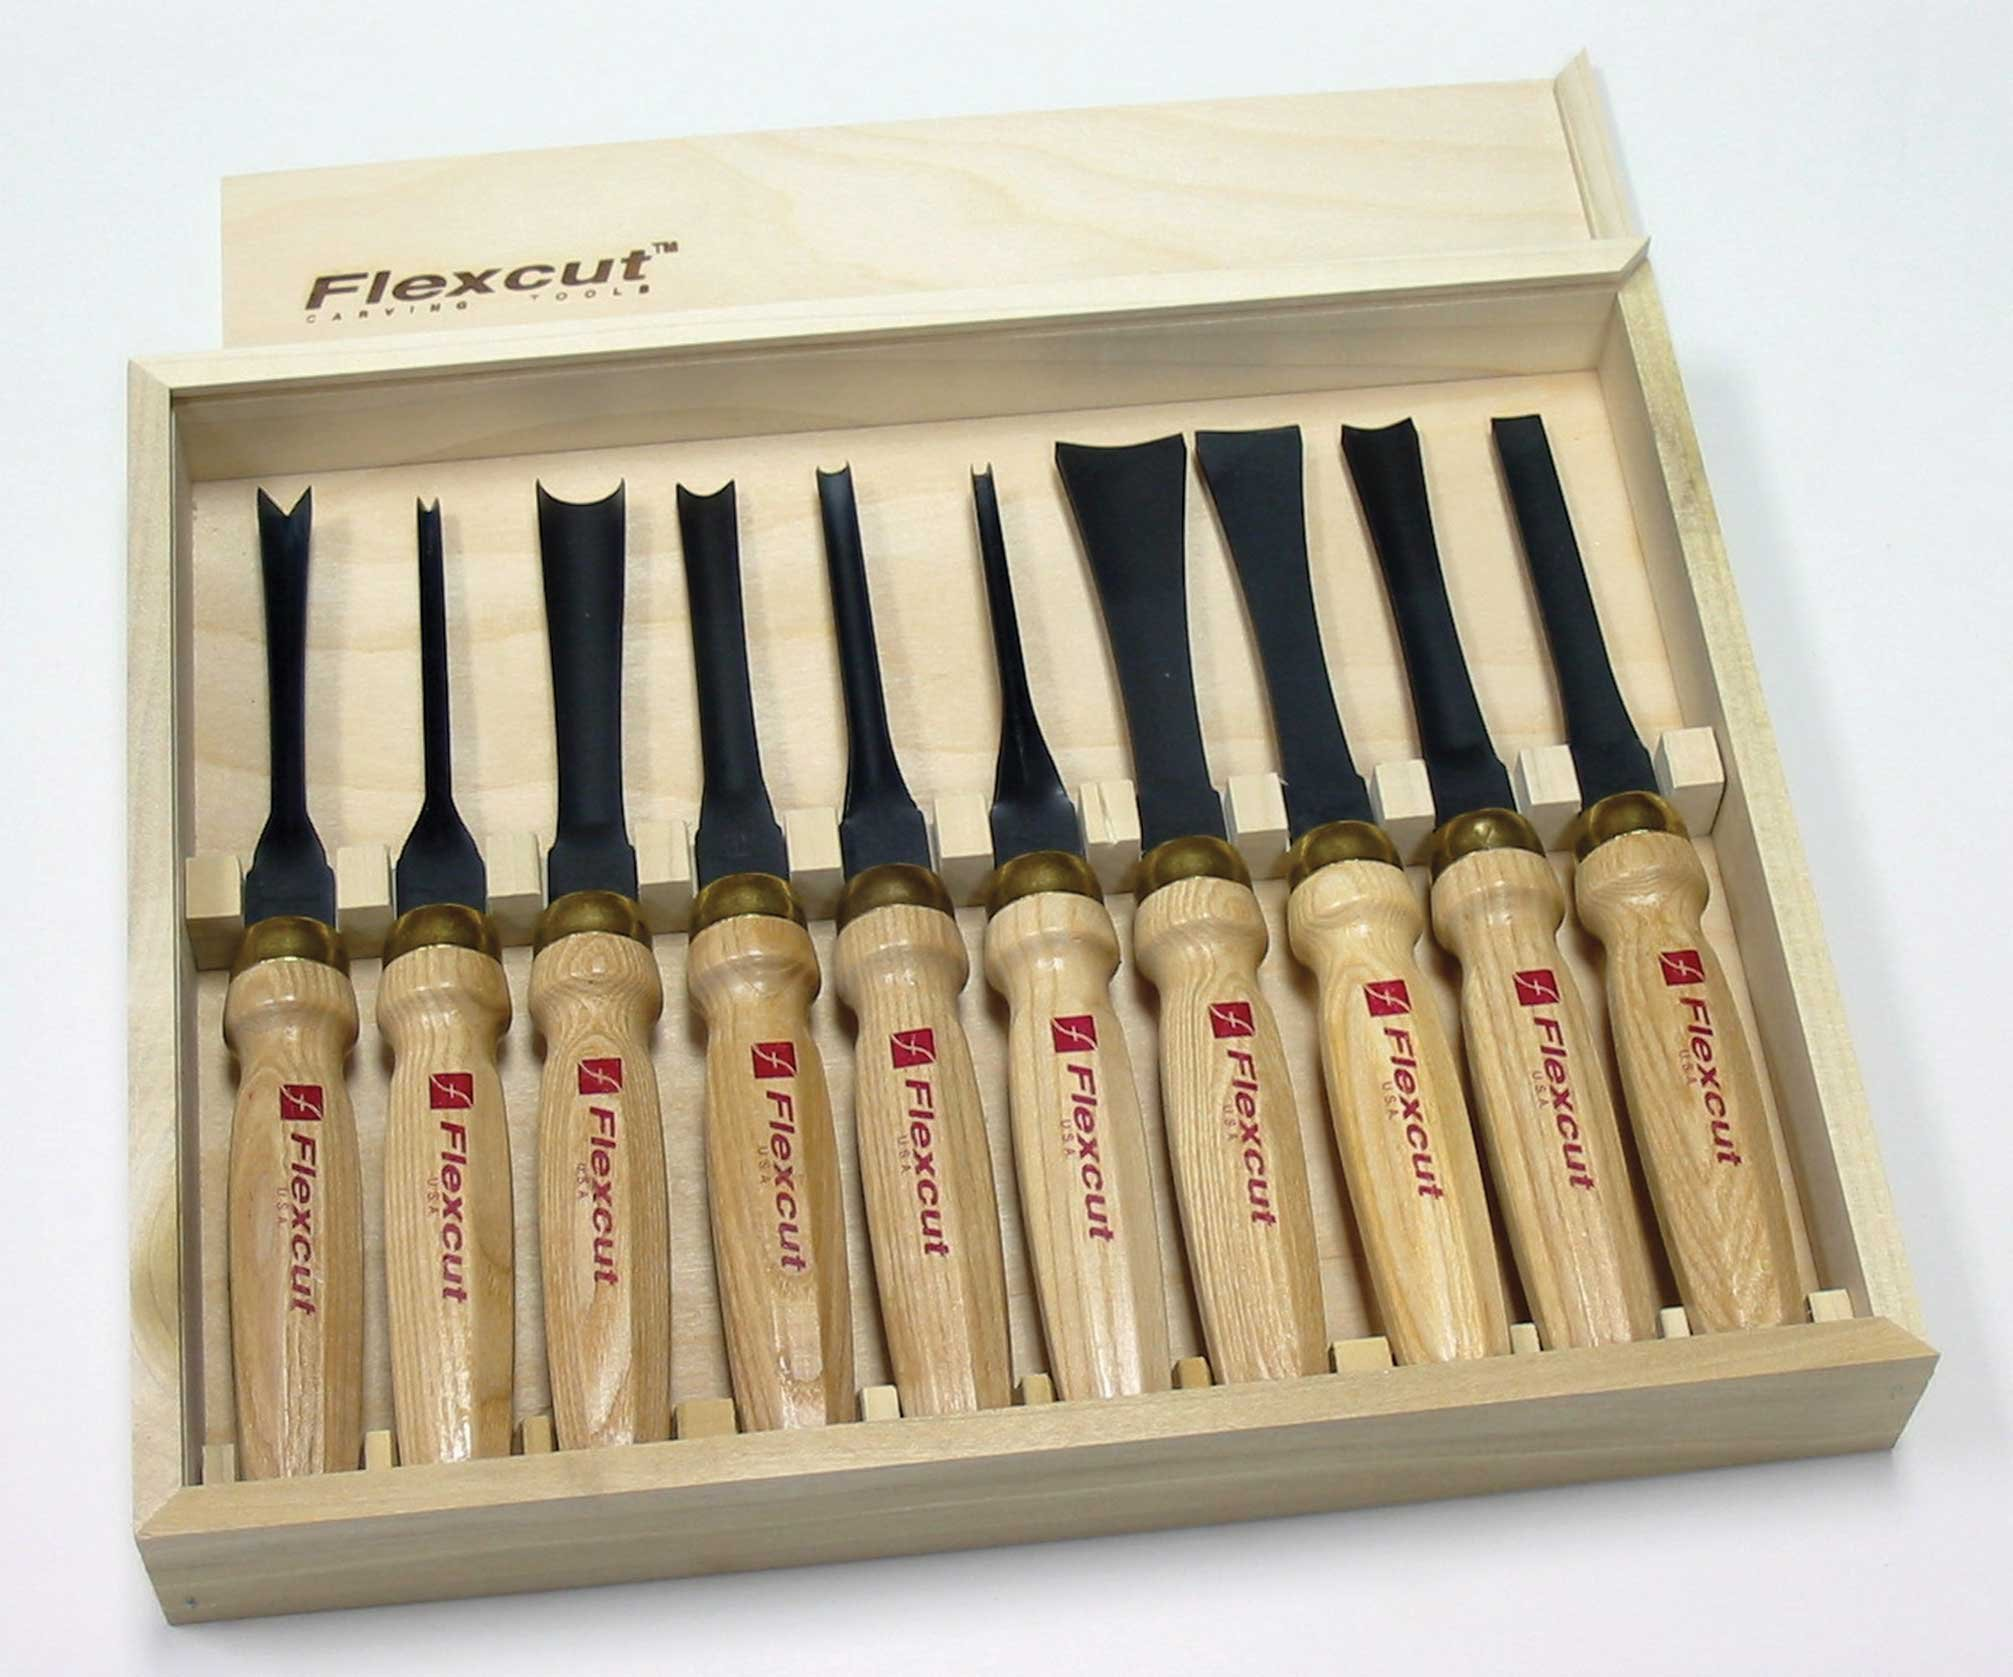 Flexcut Carving Tools, Mallet-Carving Chisels and Gouges for Woodworking, Deluxe Set of 10 (MC100)